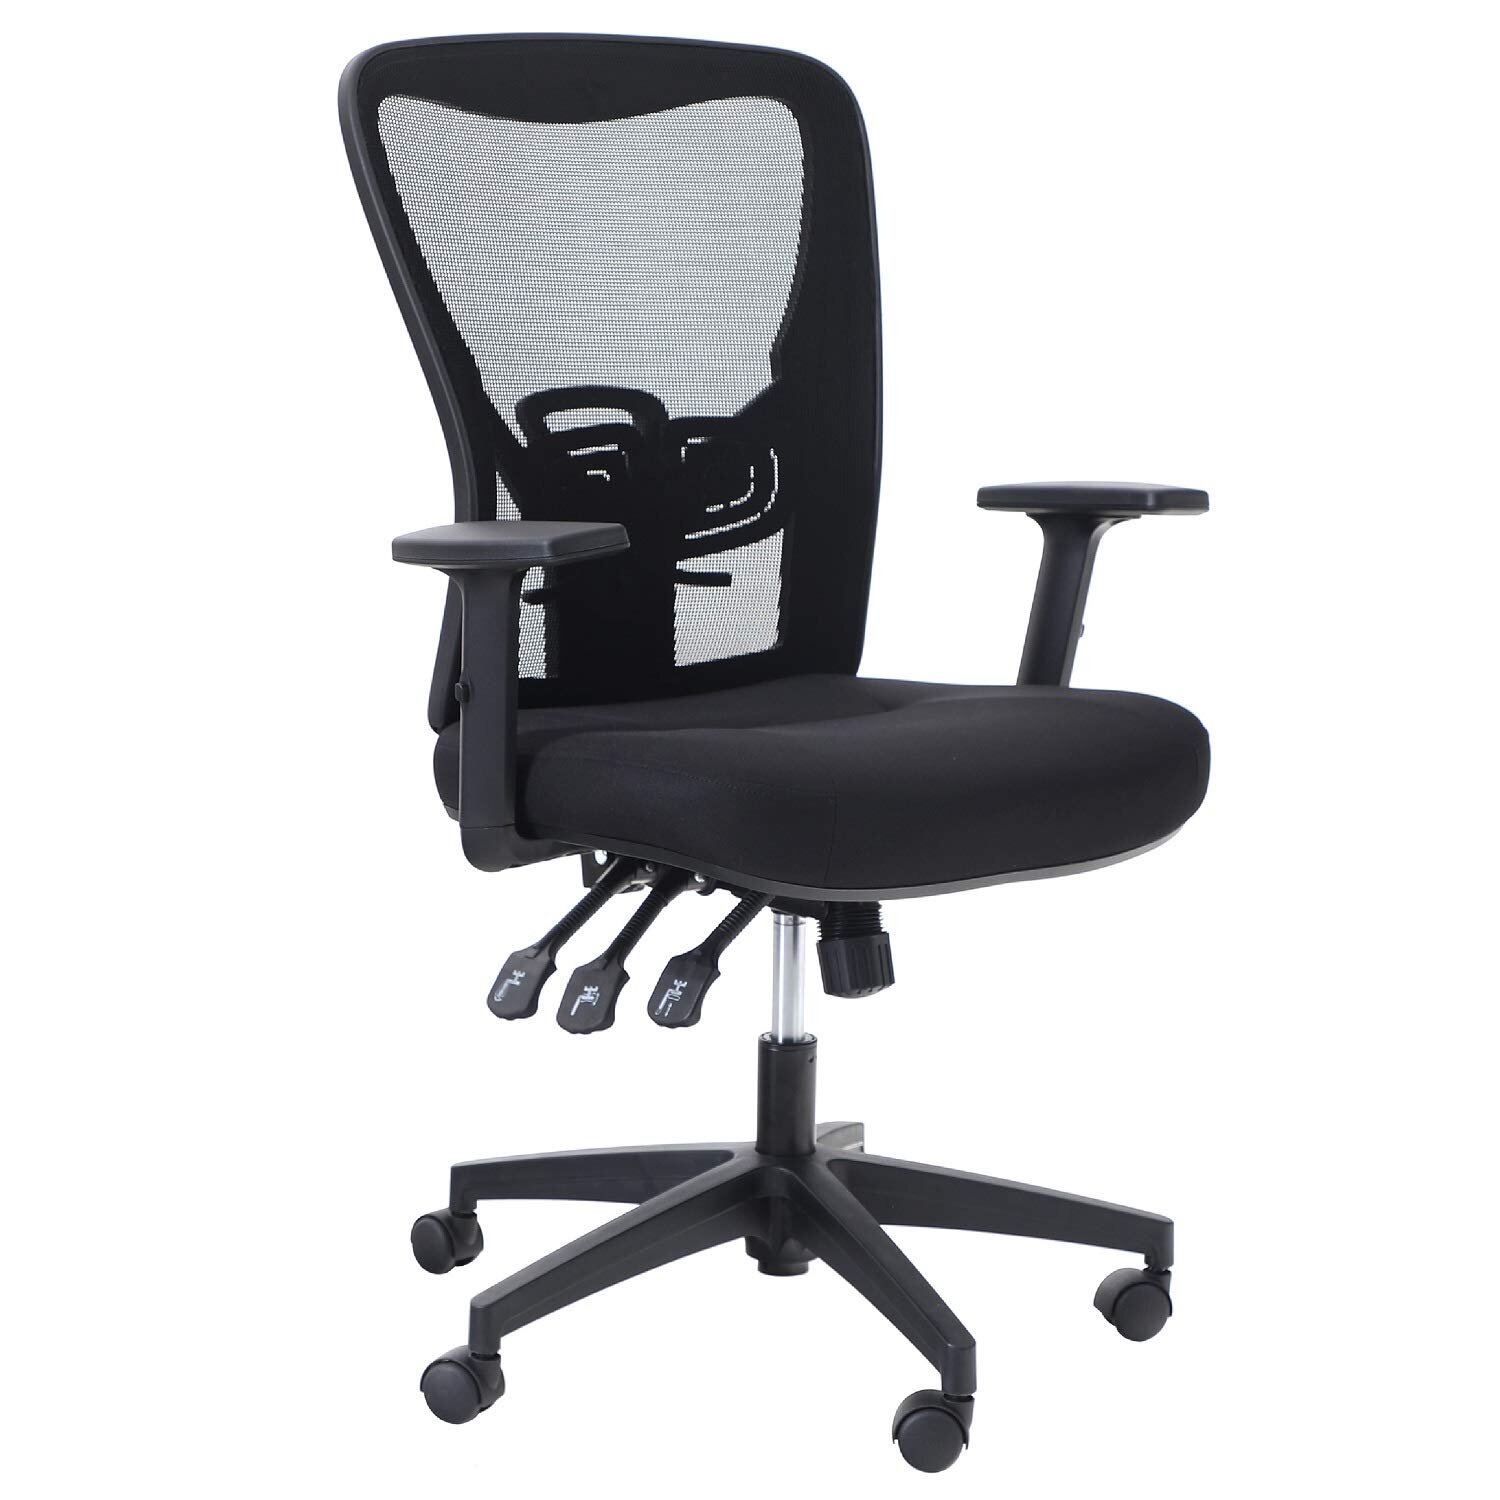 Phi Villa Ergonomic Rocking Mesh Home Office Desk Chair High Back Modern 360 Swivel Executive Computer Chair With Height Adjustable Armrests Wayfair